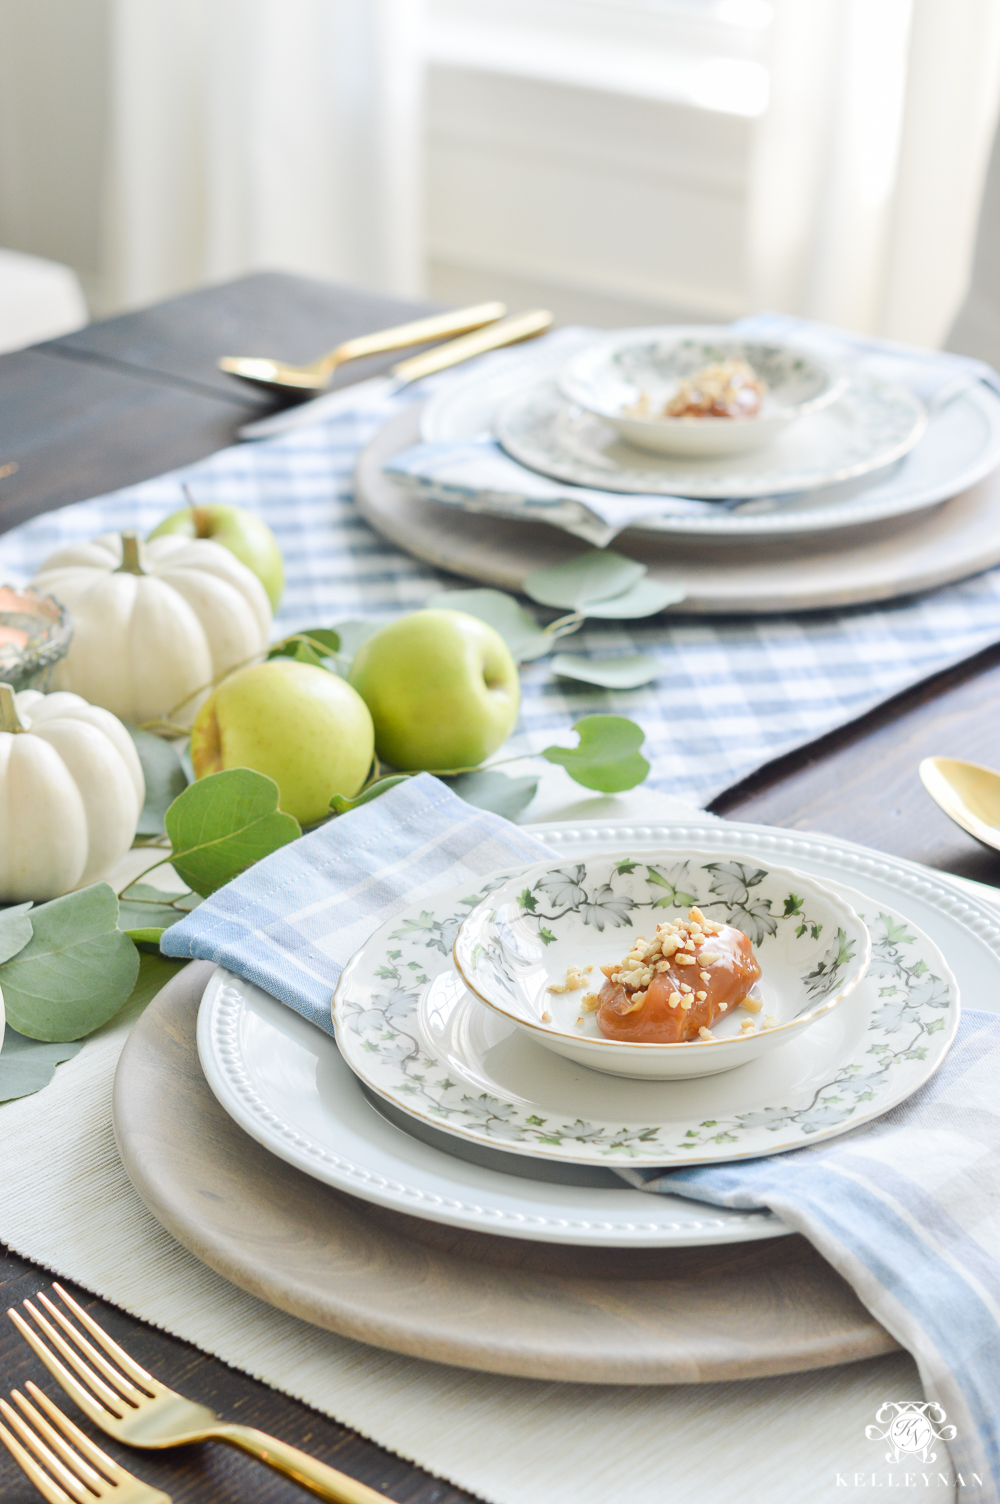 Fall Caramel Apple Table Place Setting Ideas- what to put on plate